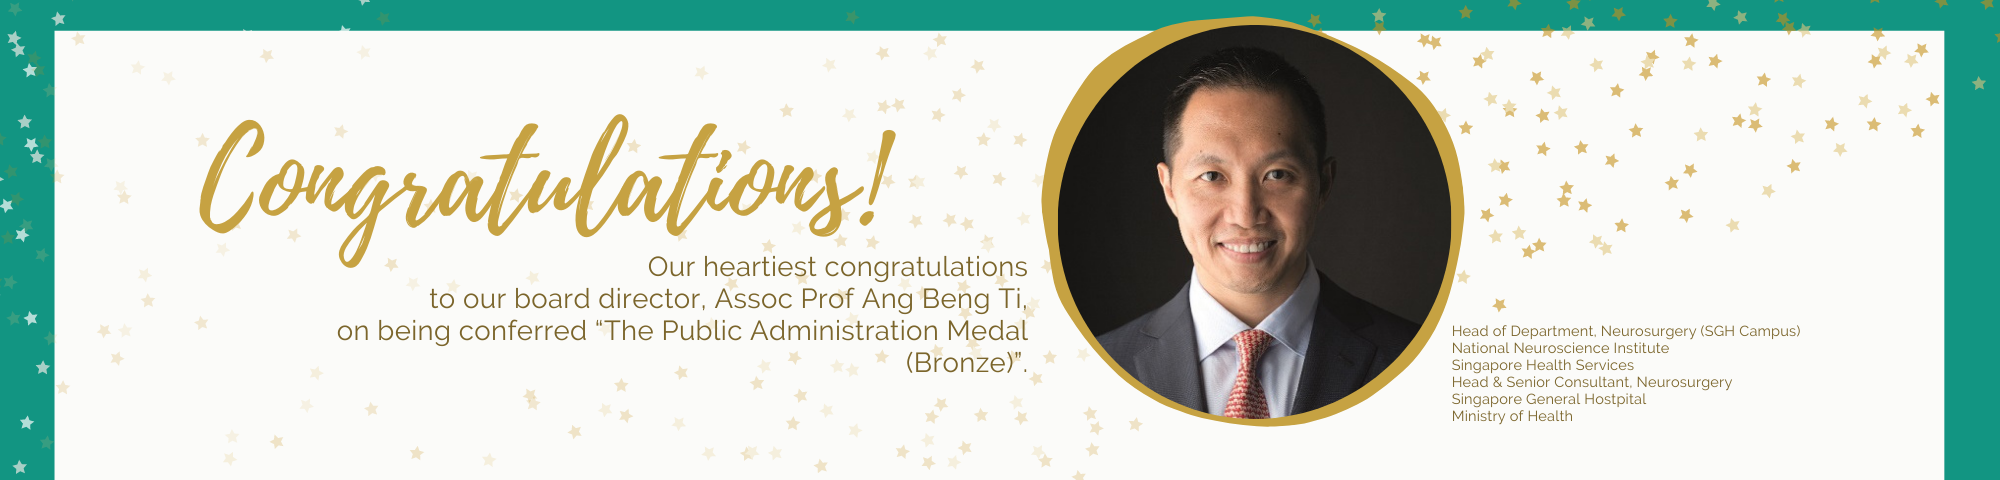 """Our heartiest congratulations to our board director, Assoc Prof Ang Beng Ti, on being conferred """"The Public Administration Medal (Bronze)""""."""